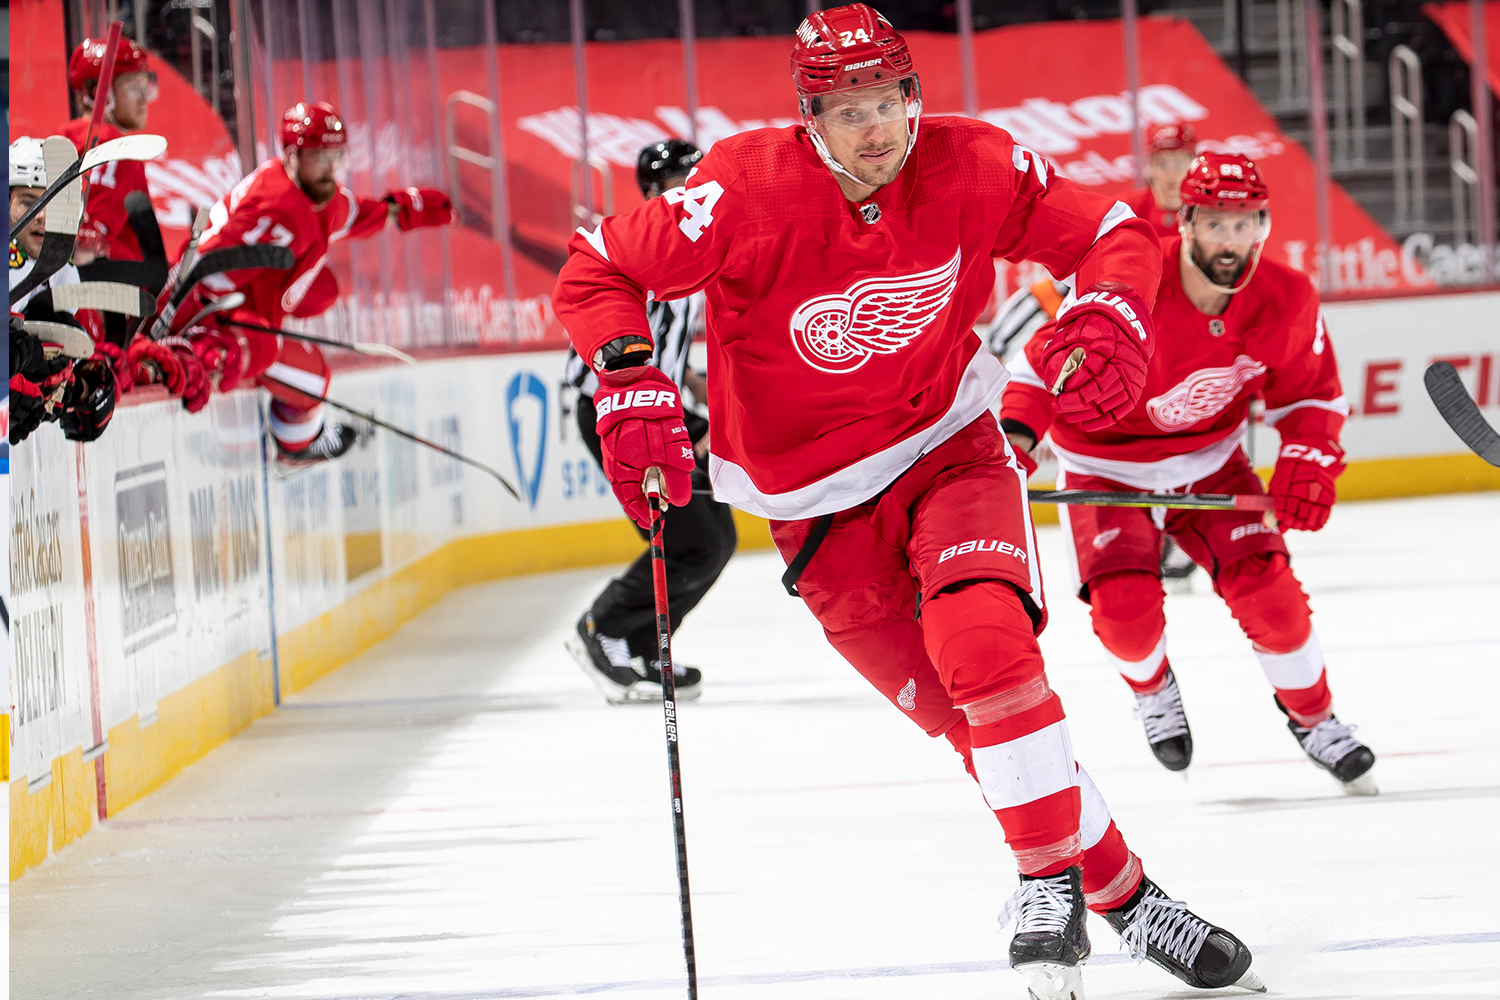 Richard Panik #24 of the Detroit Red Wings skates after a loose puck against the Chicago Blackhawks during an NHL game at Little Caesars Arena on April 17, 2021